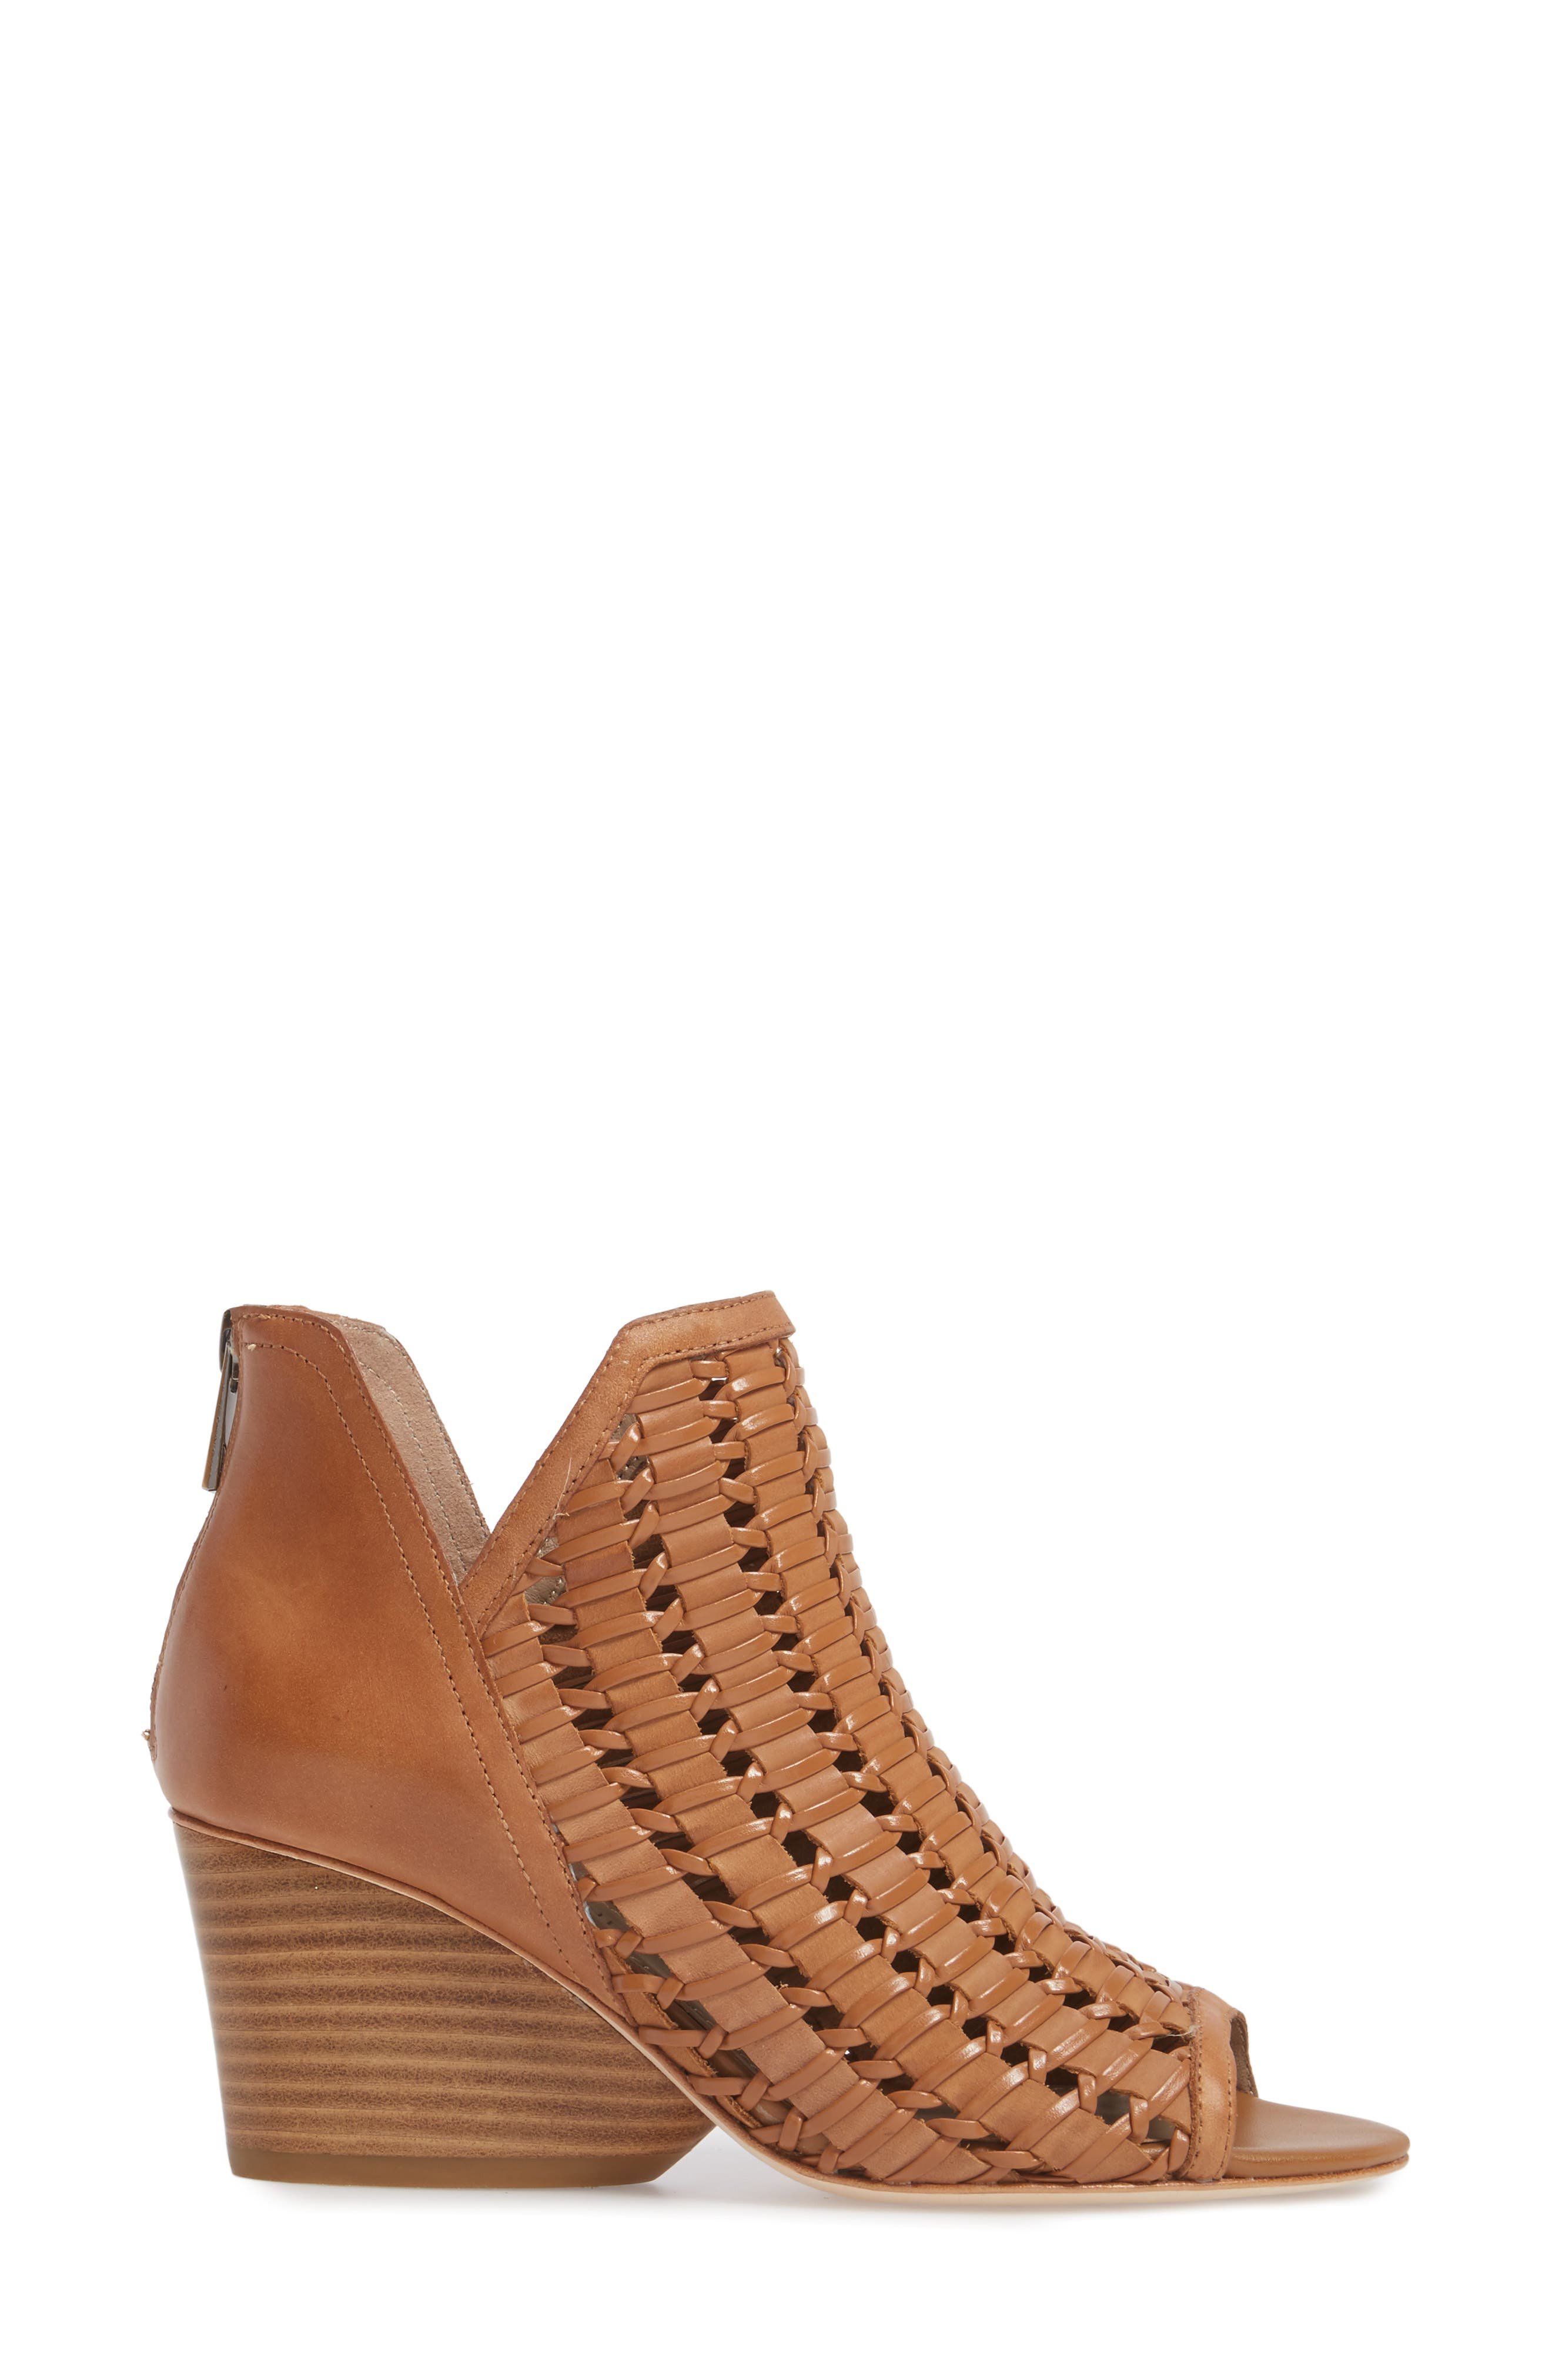 Jacqi Woven Open Toe Bootie,                             Alternate thumbnail 6, color,